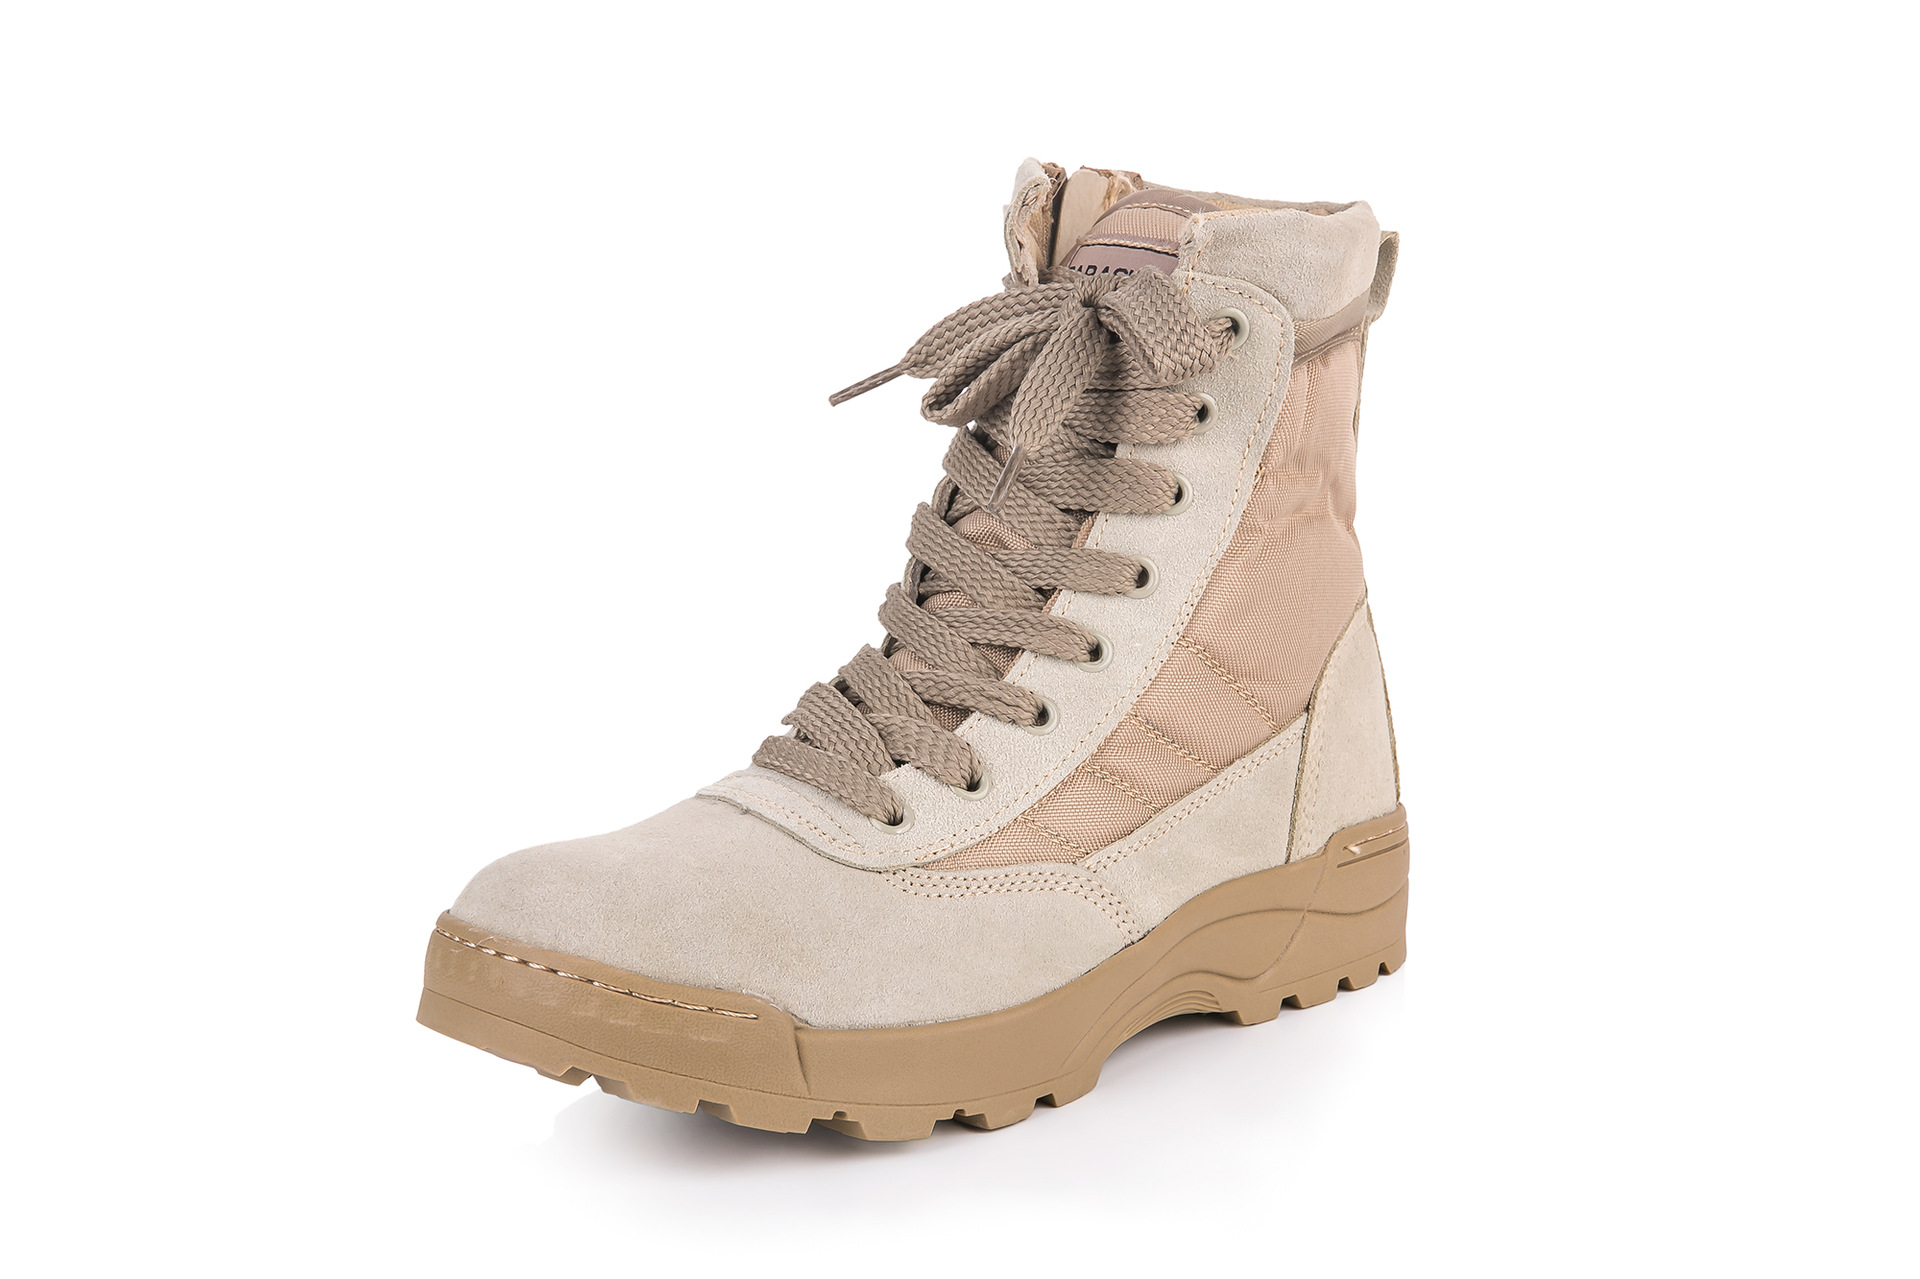 Manufacturers Direct Selling Sandy Color Desert Combat Boots Amu Desert Boots SFB Canvas Breathable Sandy Color Boots Desert Can